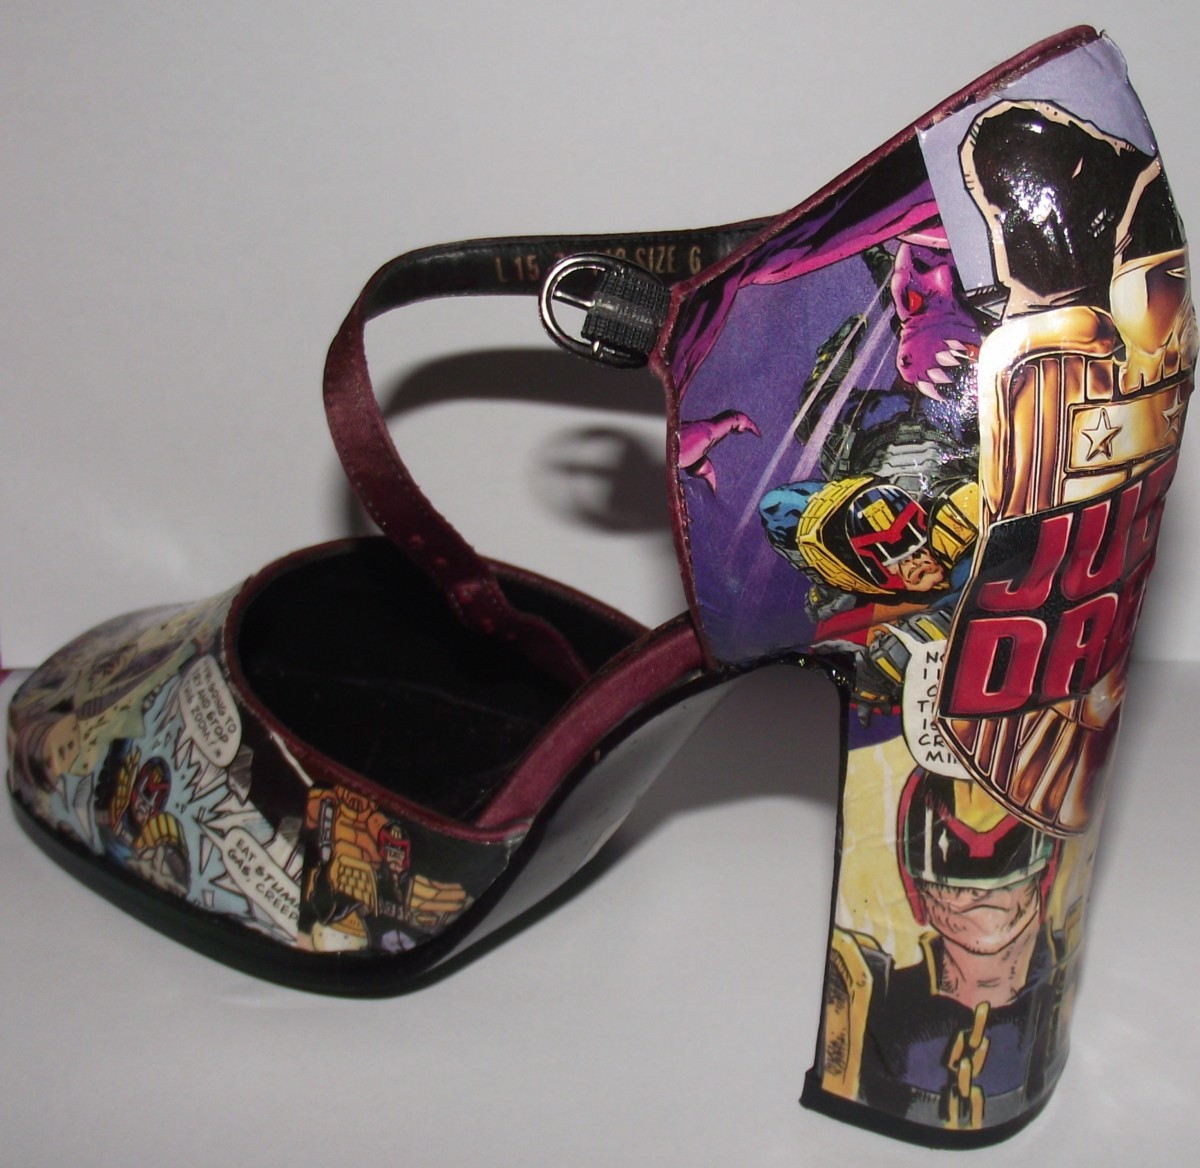 ad2ffe204159 How to Make Comicbook Shoes